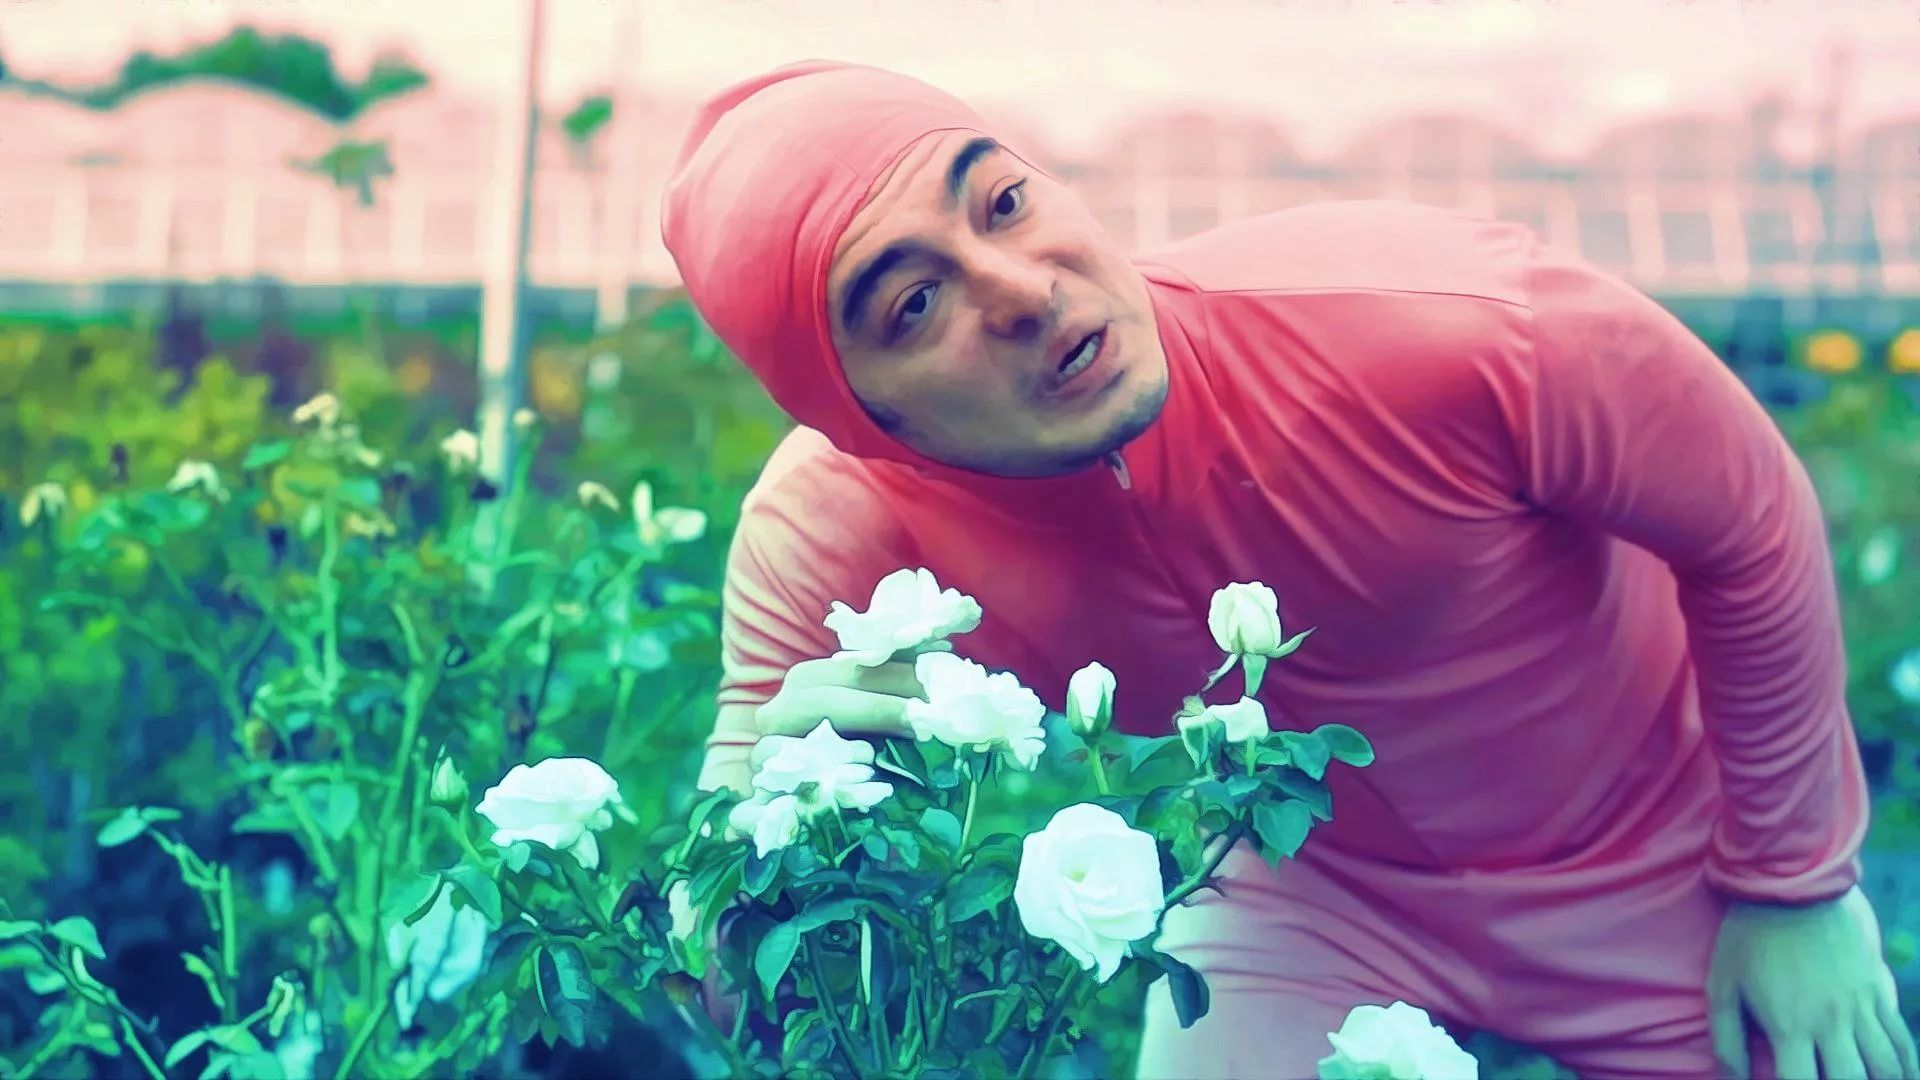 Pink Guy download wallpaper image